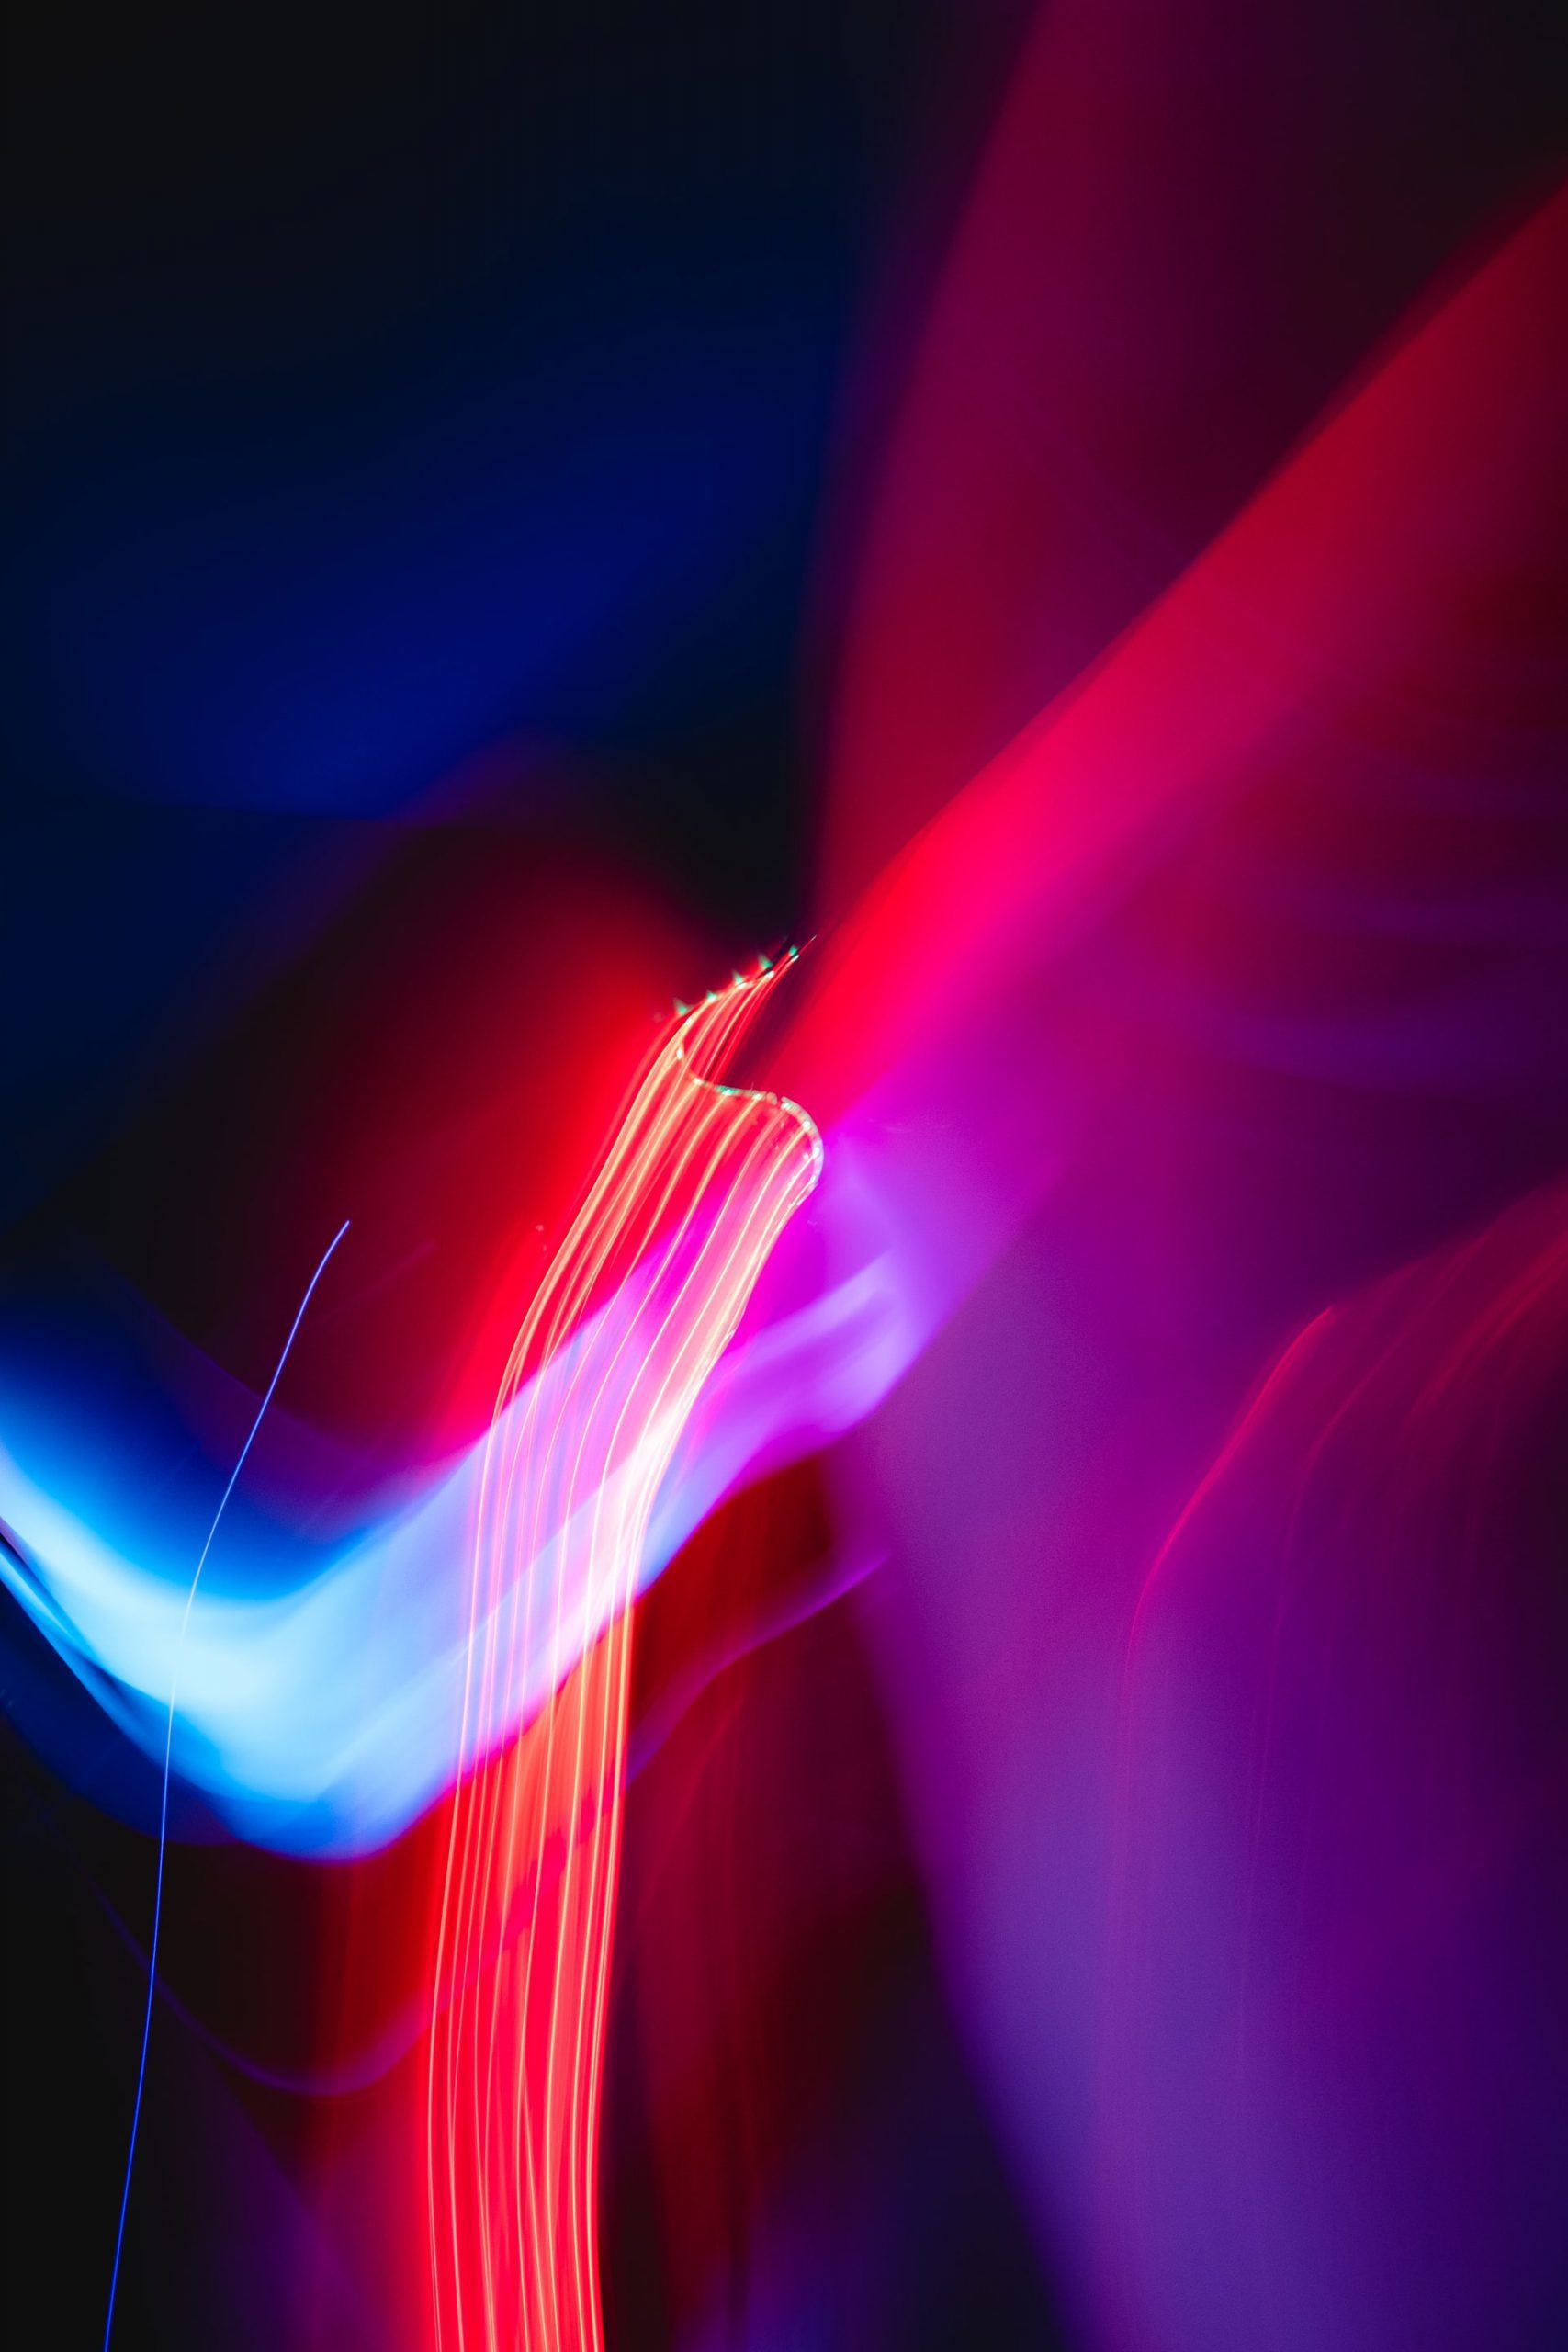 abstract pink, purple, and blue light